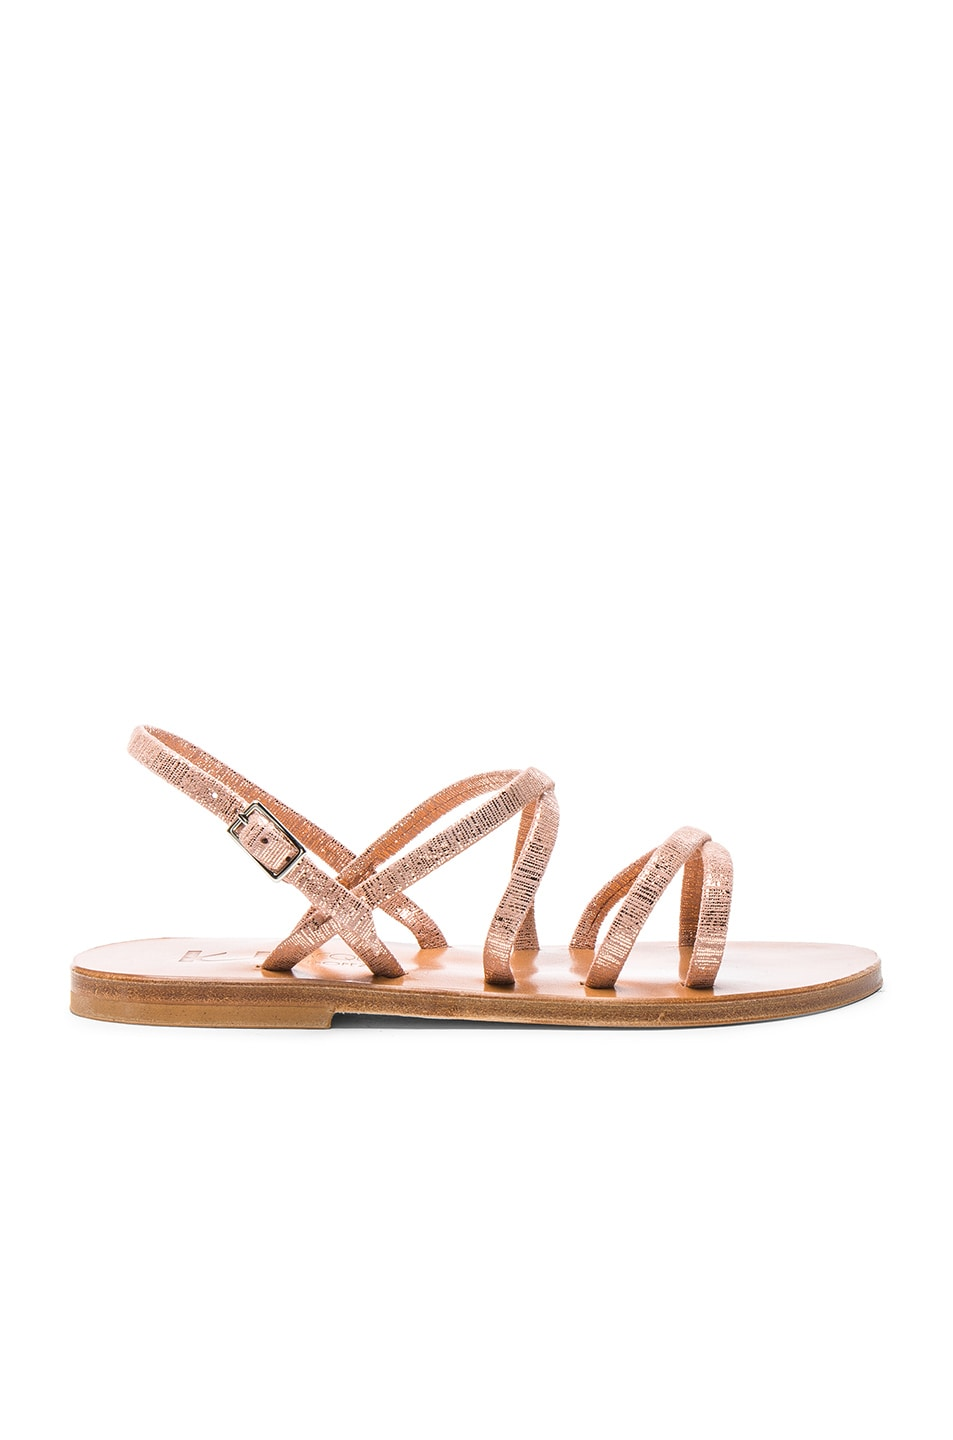 Image 1 of K Jacques Metallic Suede Batura Sandals in Rey Peach